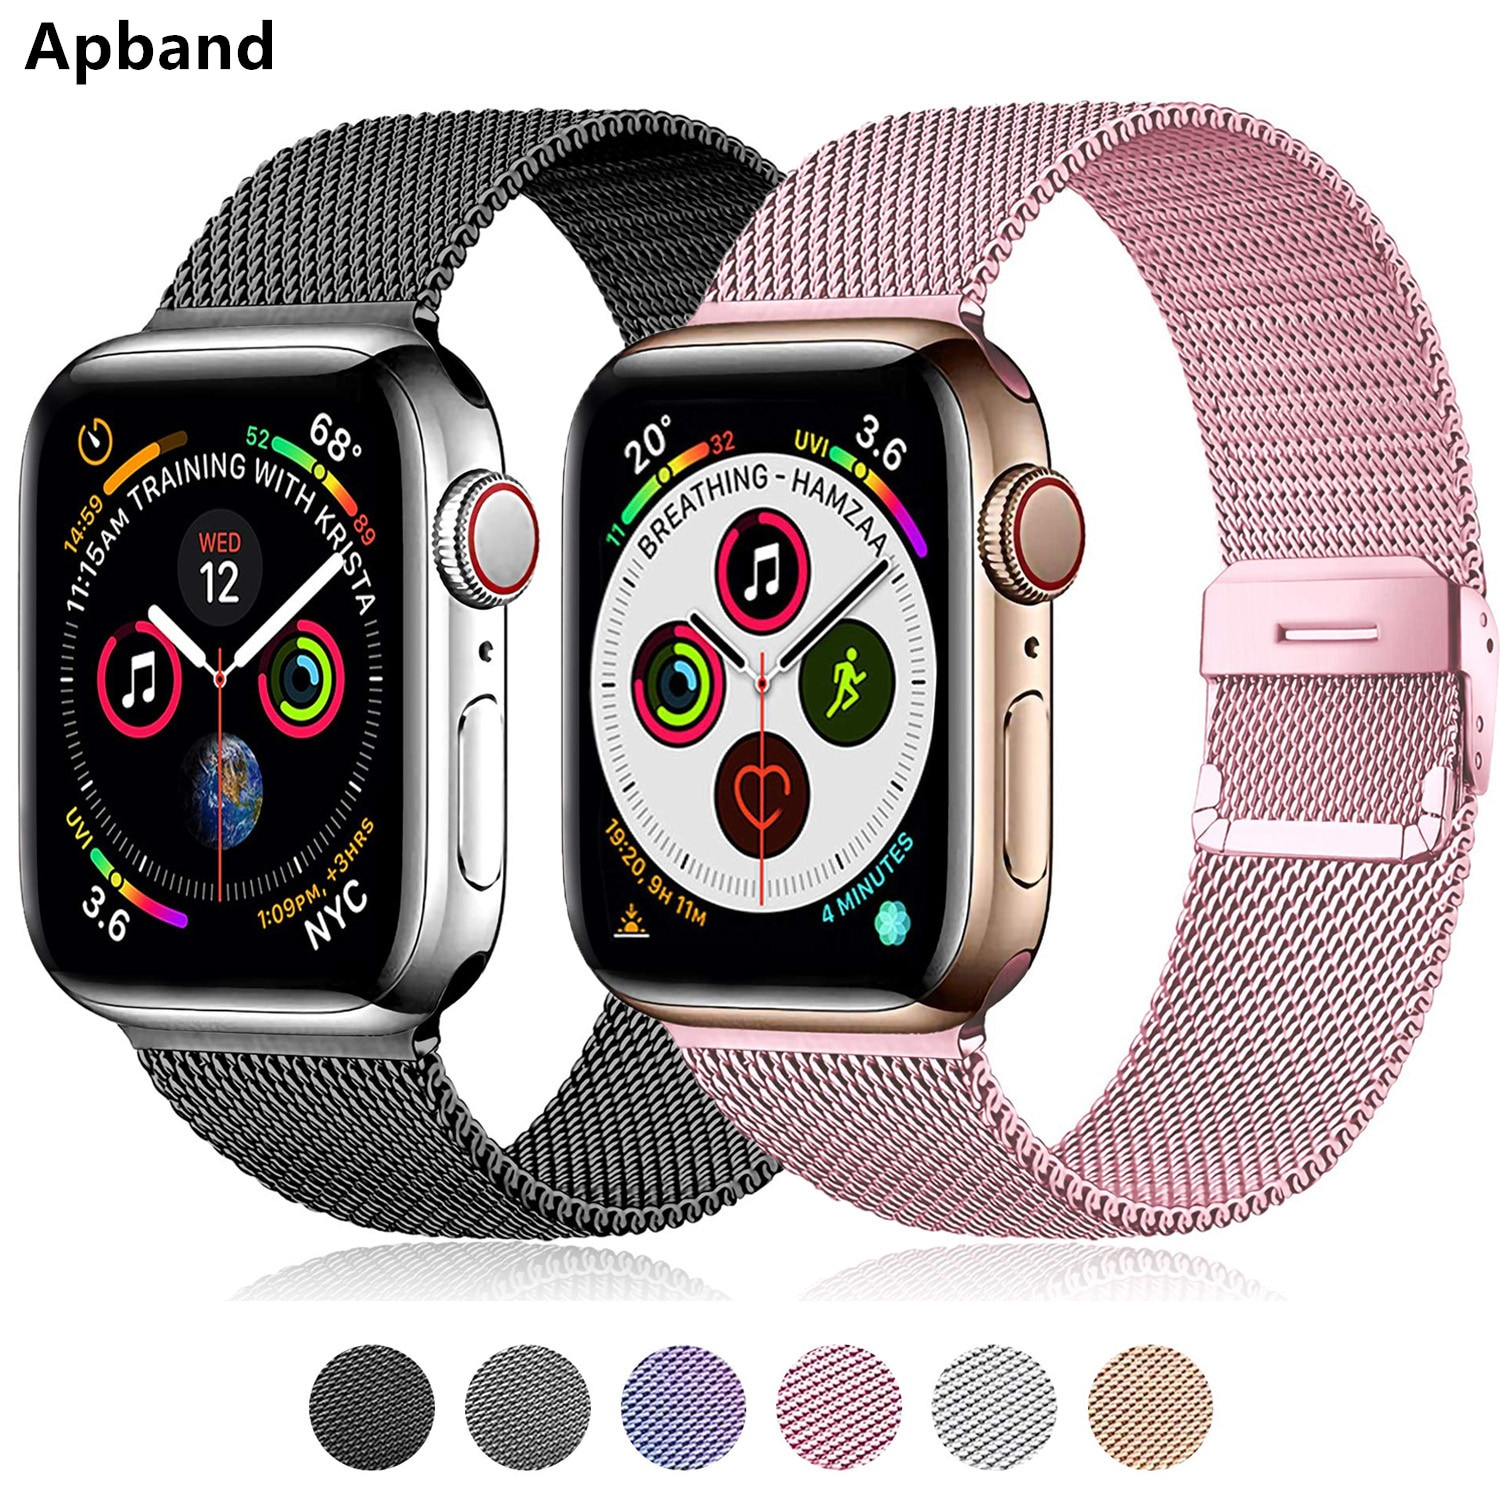 Milanese strap For Apple watch band 44mm 40mm iWatch band 42mm 38mm Metal Stainless steel bracelet Apple Watch series 4 3 5 SE 6 woman strap for apple watch band 40mm 44mm link bracelet iwatch band 38mm 42mm stainless steel for apple watch series 6 5 4 3 2